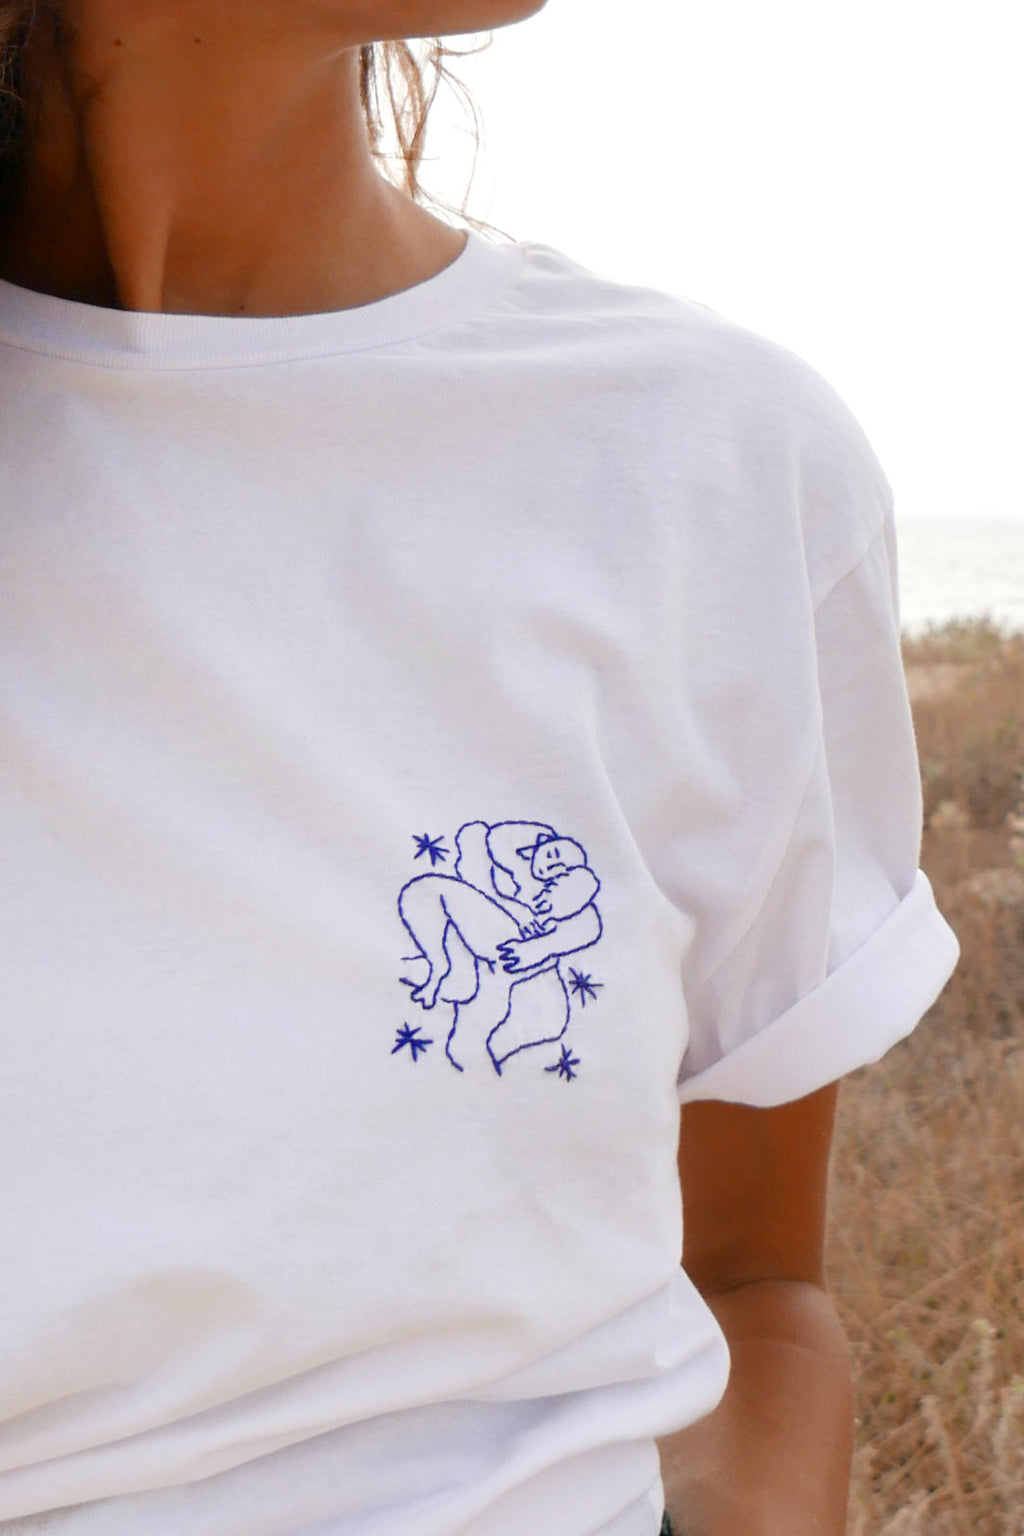 Embroidered t-shirt - Matisse